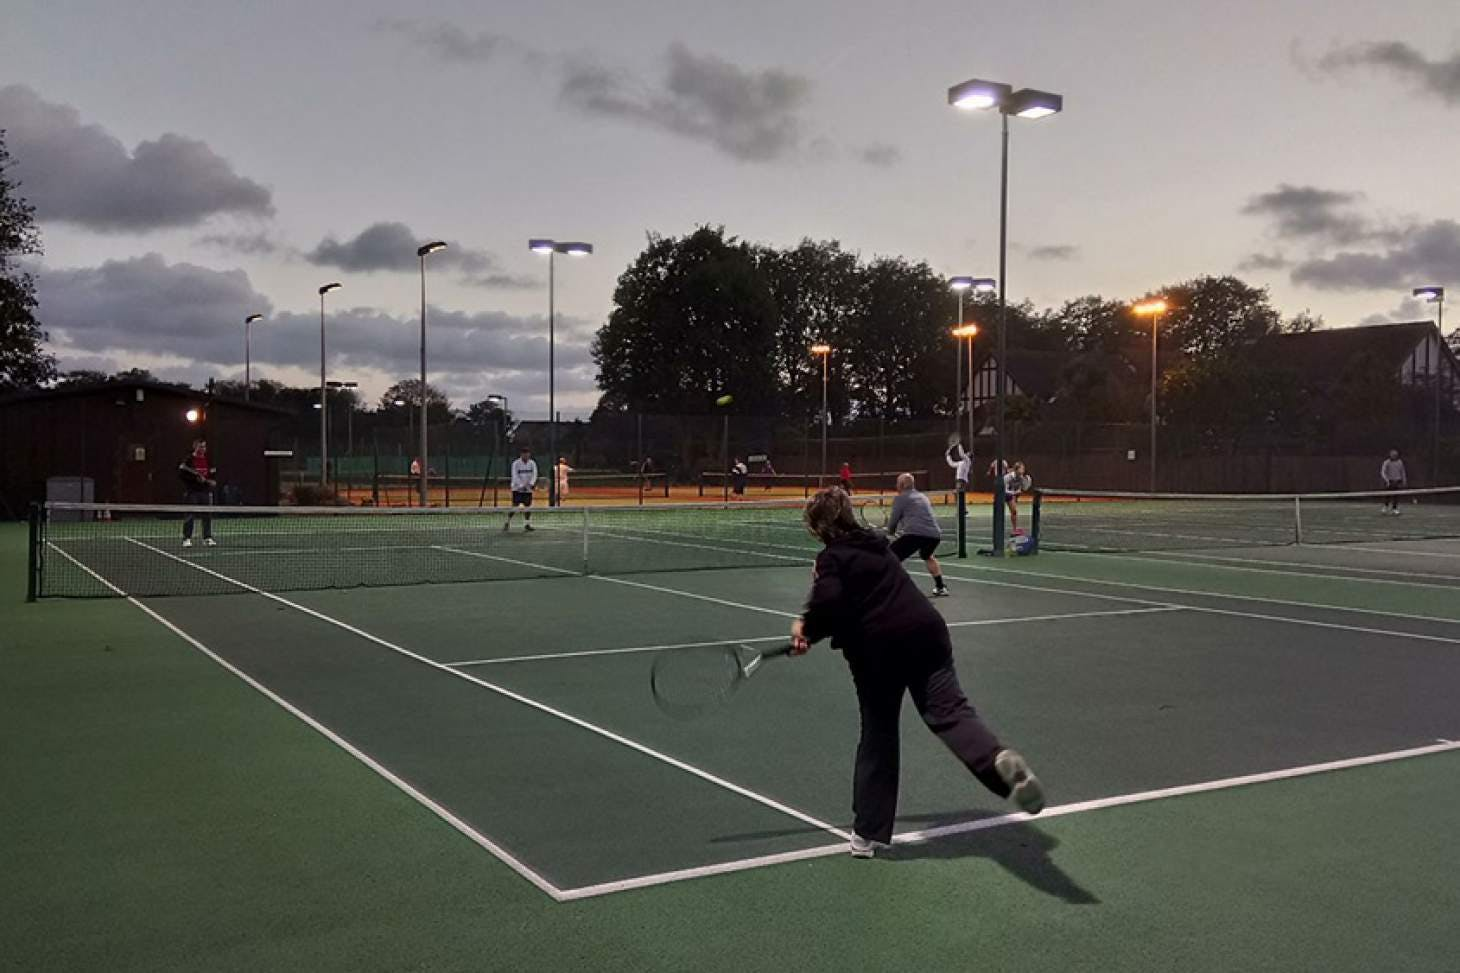 Sussex County Lawn Tennis Club Outdoor | Hard (macadam) tennis court